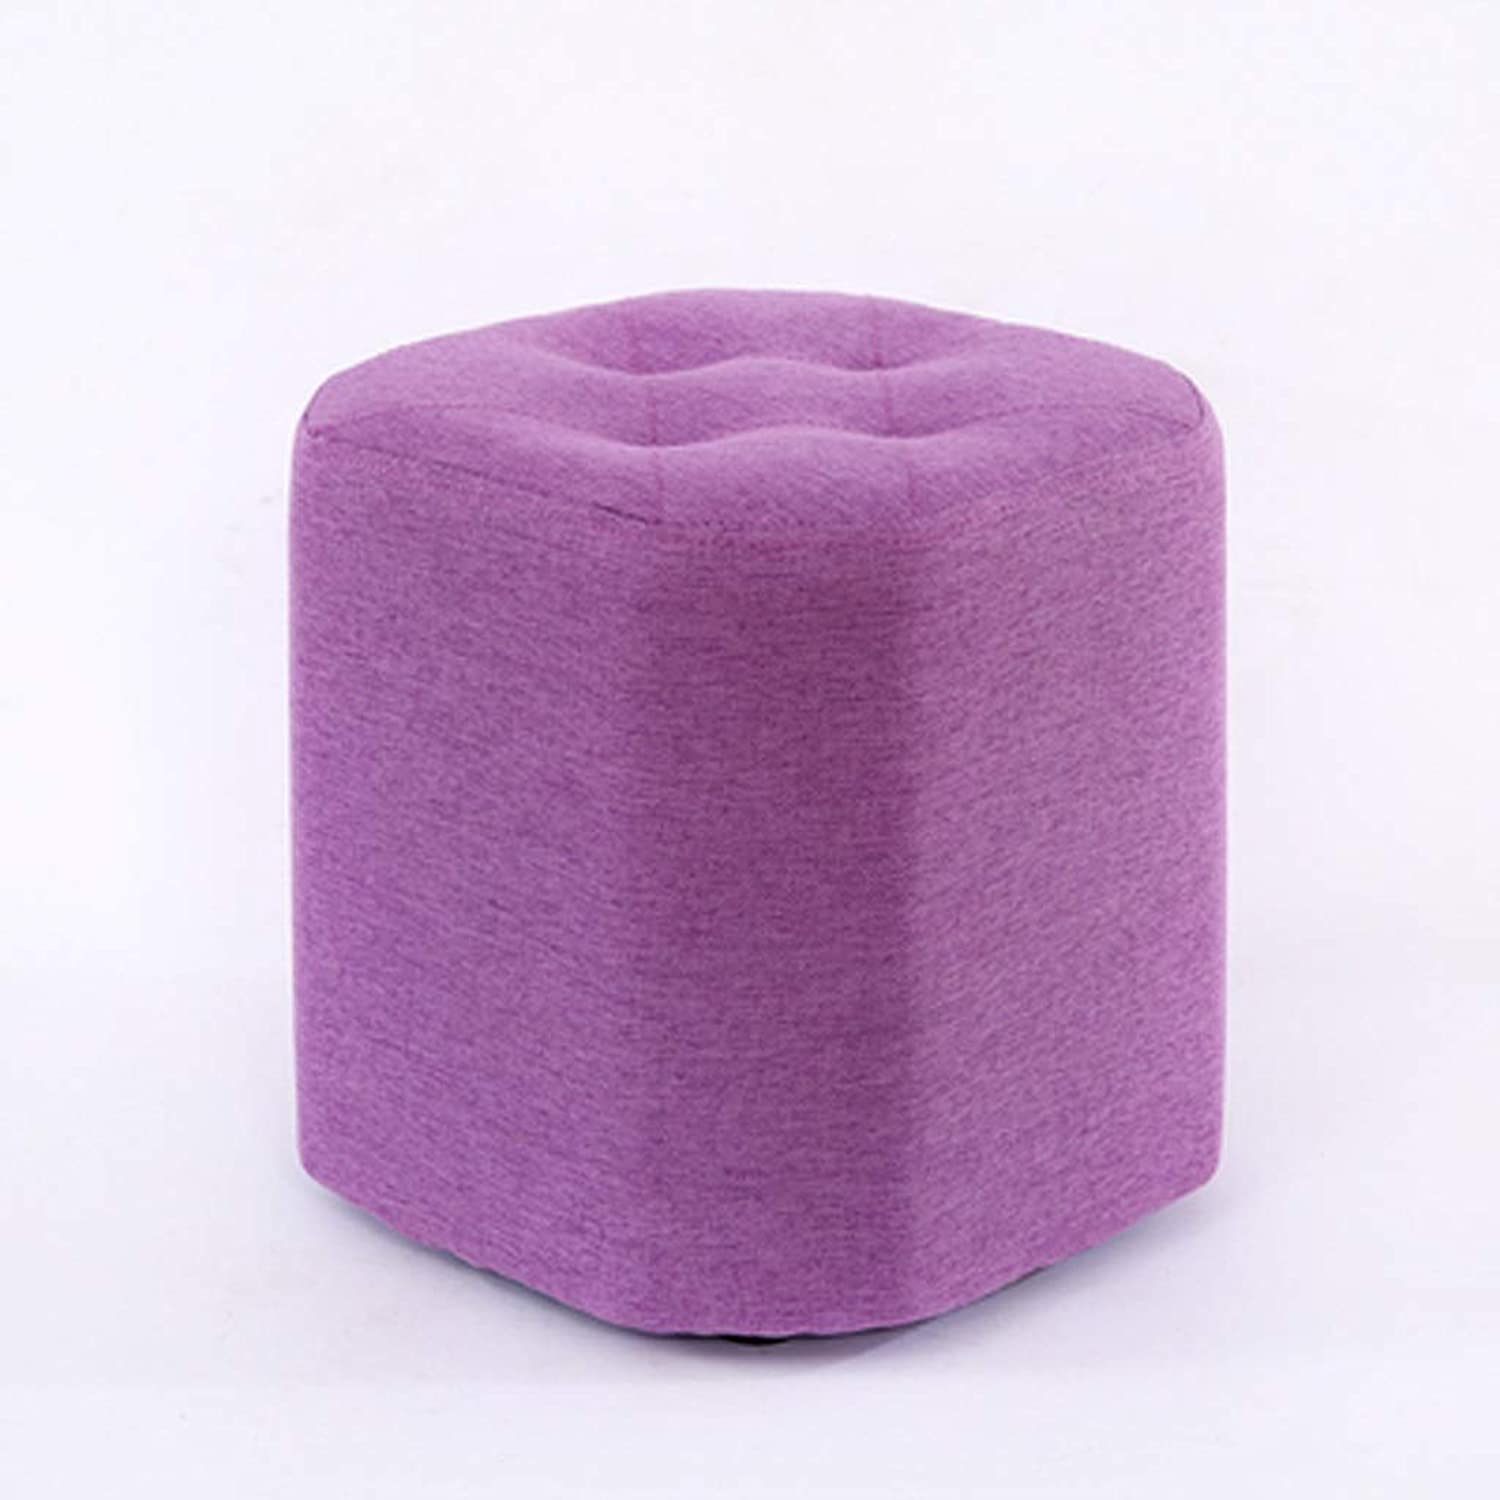 LSXLSD Small Stool Home Fabric Stool Change shoes Stool Fashion Creative Sofa Coffee Table Stool Living Room Simple Lazy Small Bench.